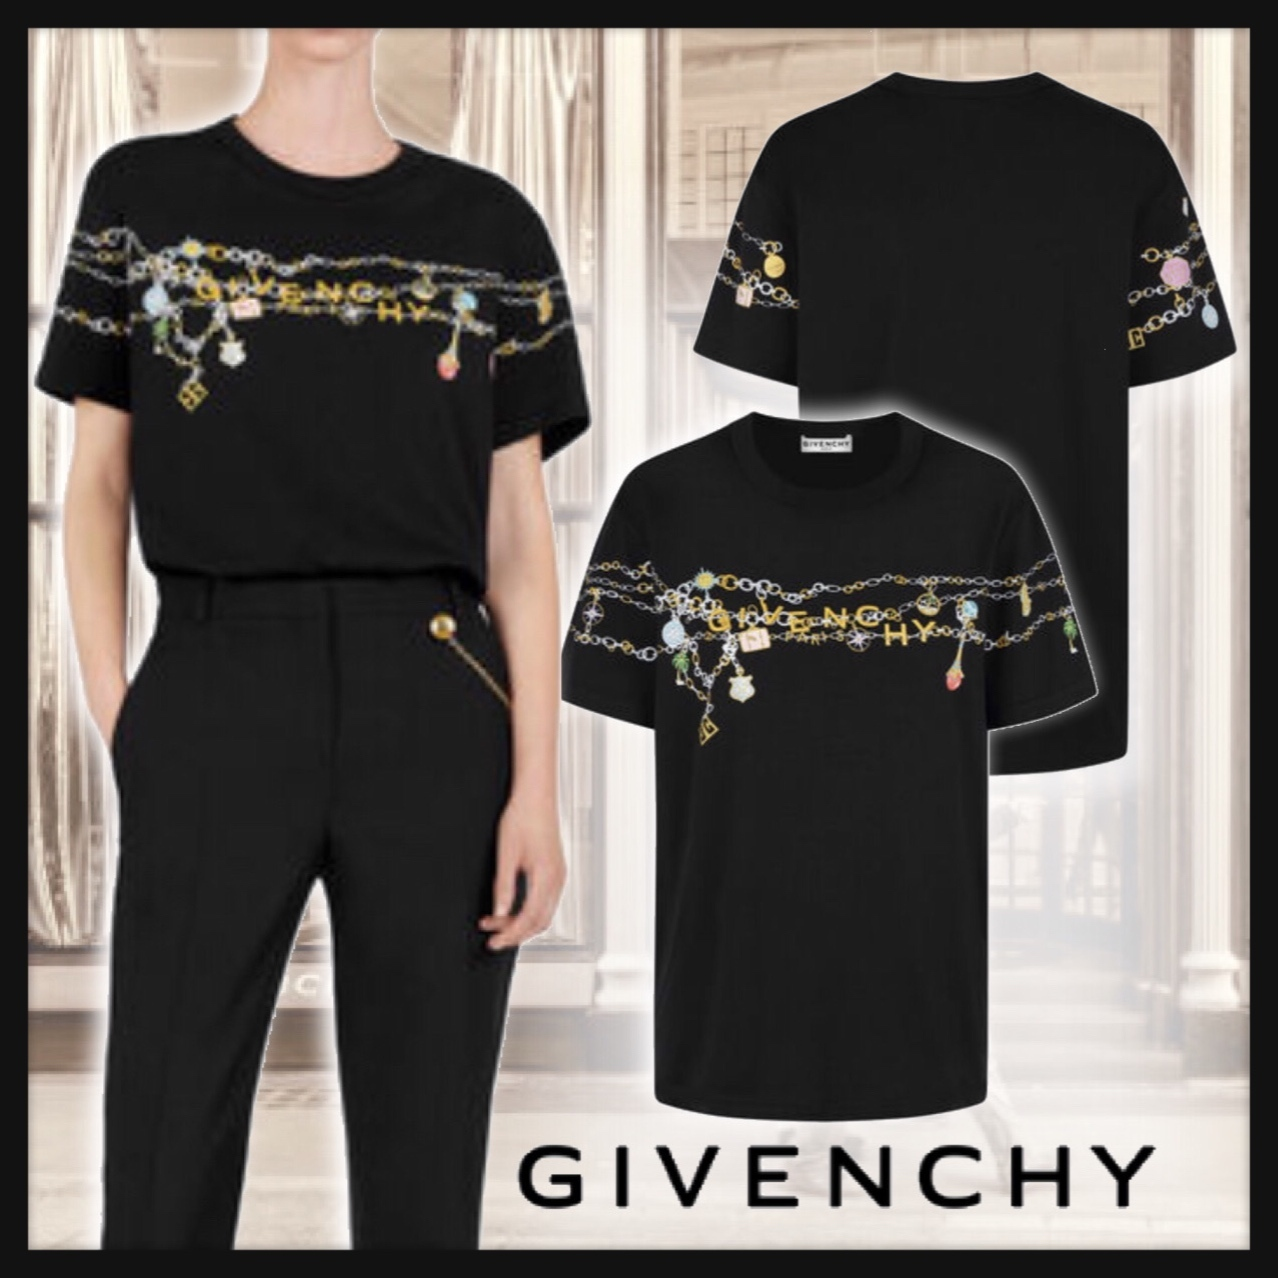 ◆GIVENCHY◆ ジバンシィチャームプリント入りジャージーTシャツ (GIVENCHY/Tシャツ・カットソー) 70450946